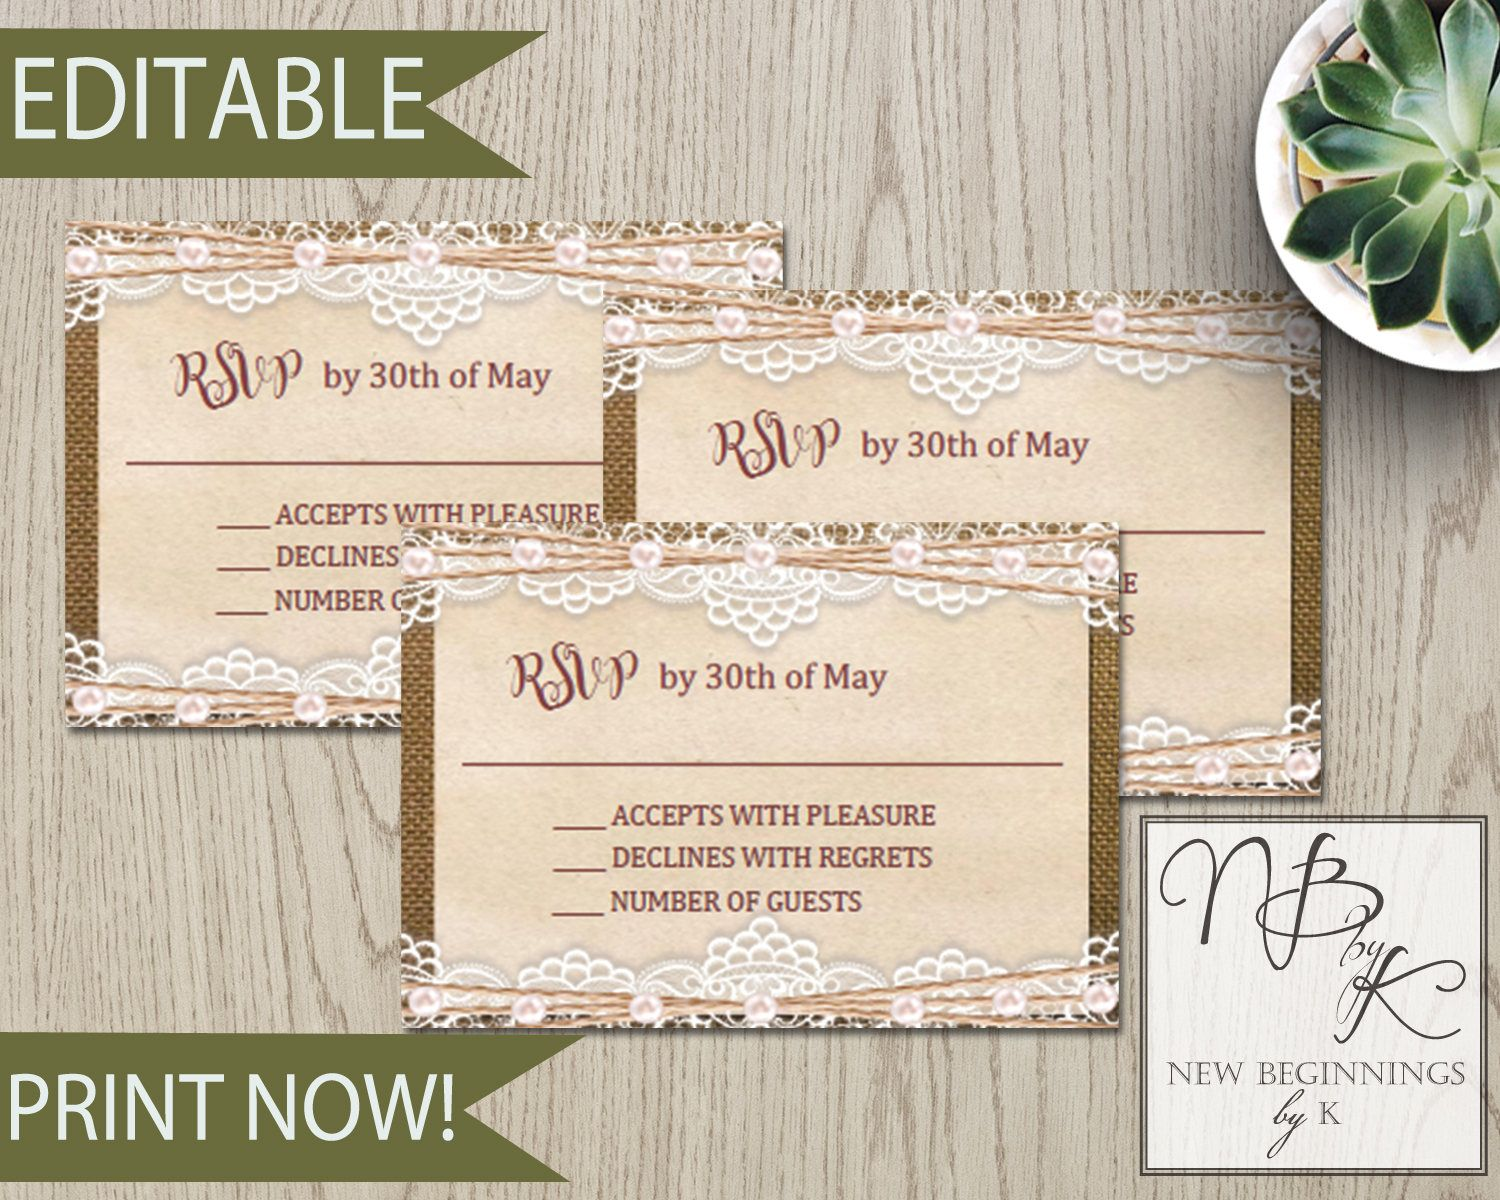 EDITABLE Rustic Burlap Wedding RSVP card with lace and pearls ...